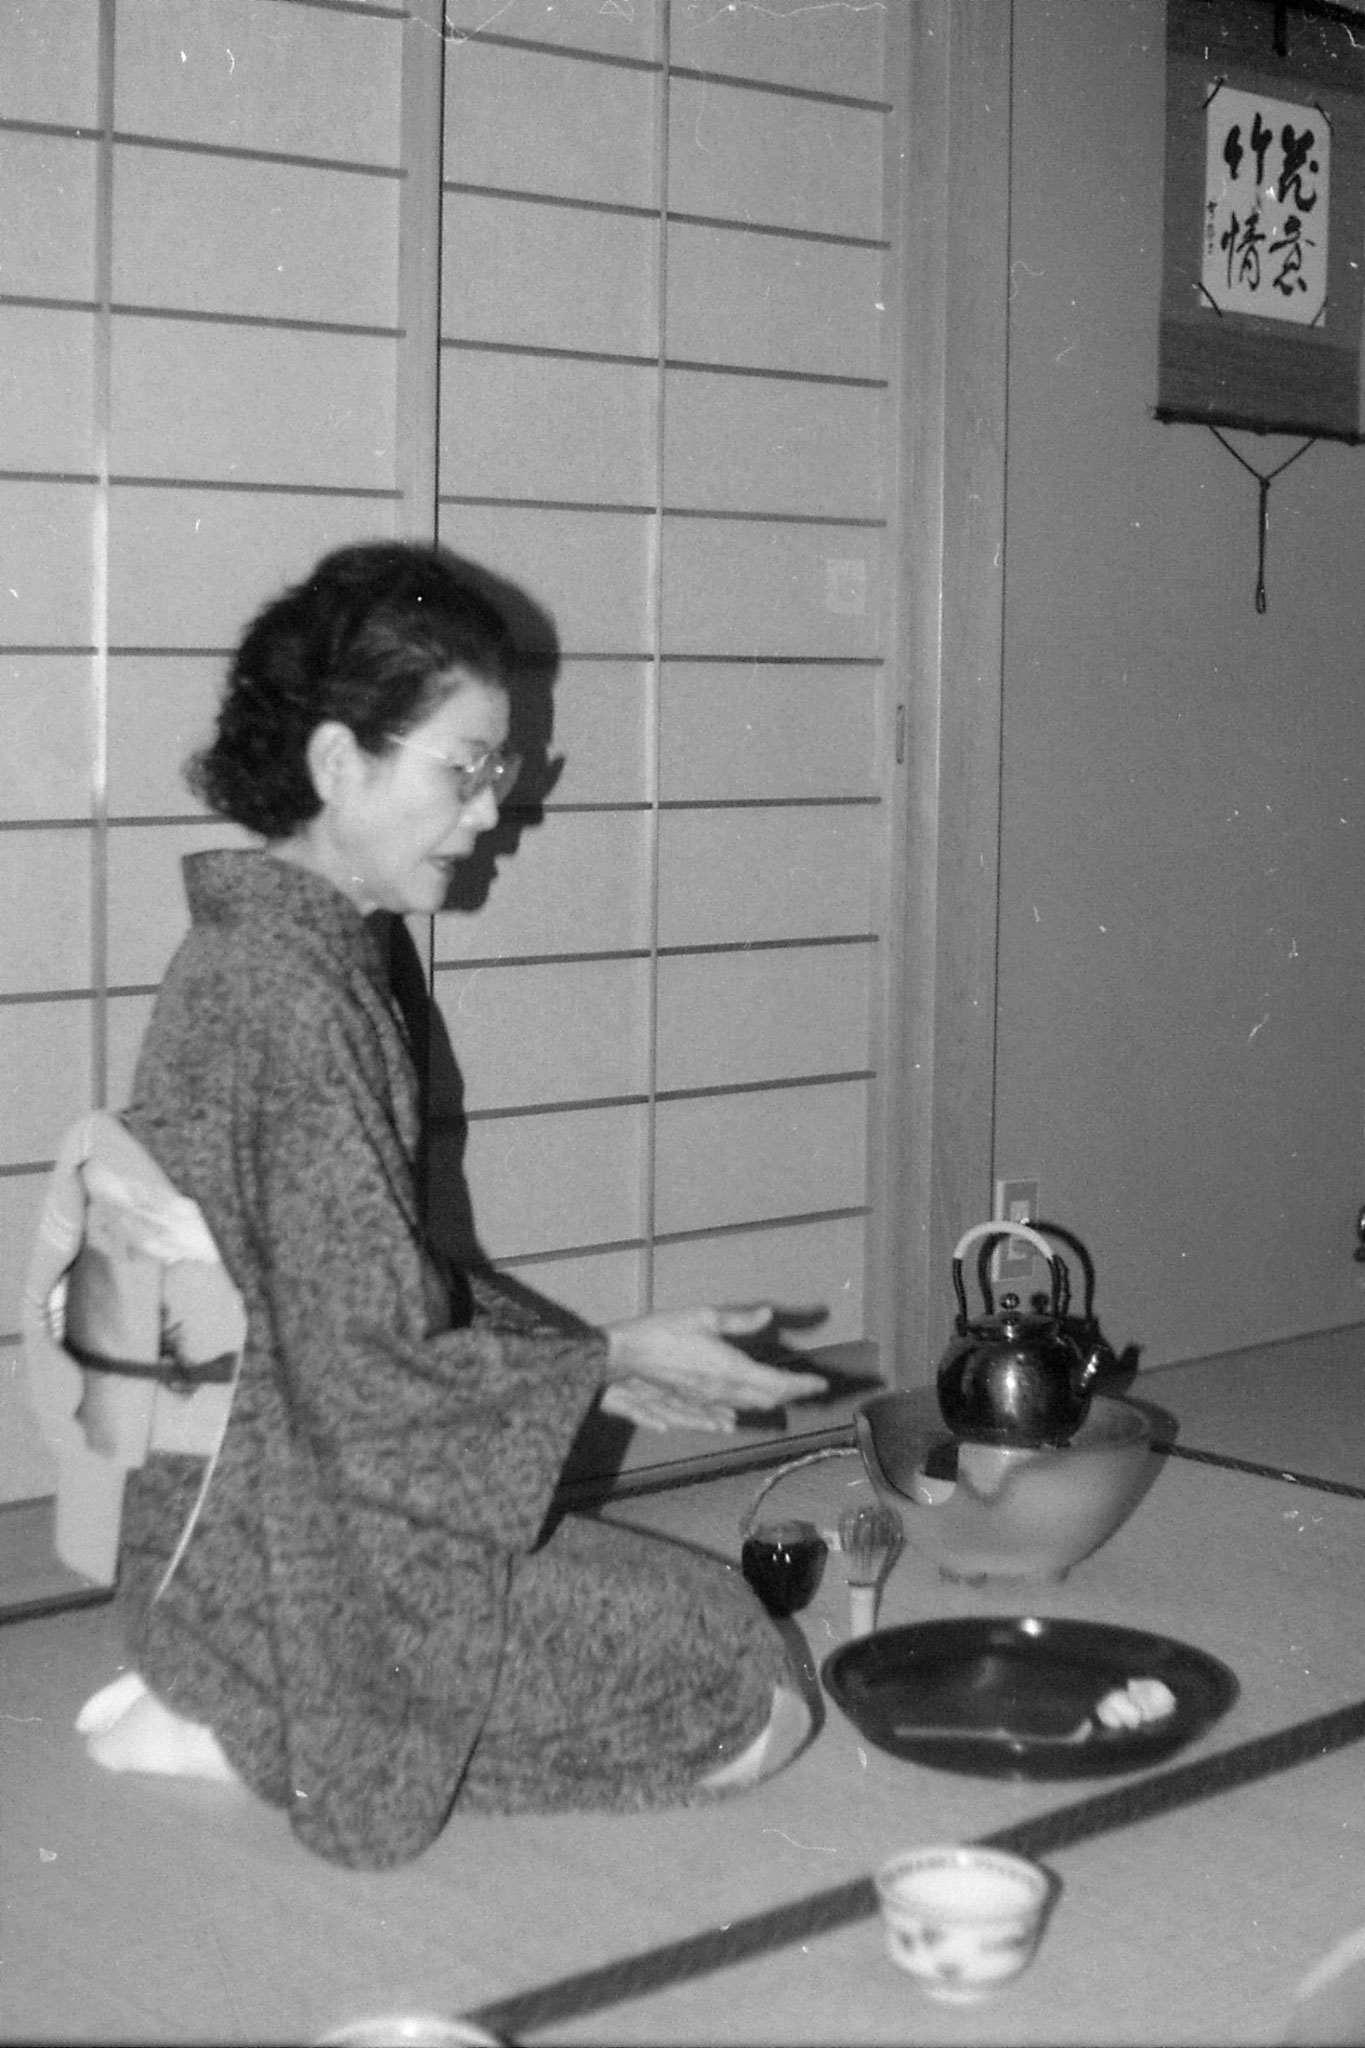 27/1/1989: 19:tea ceremony at neighbour's